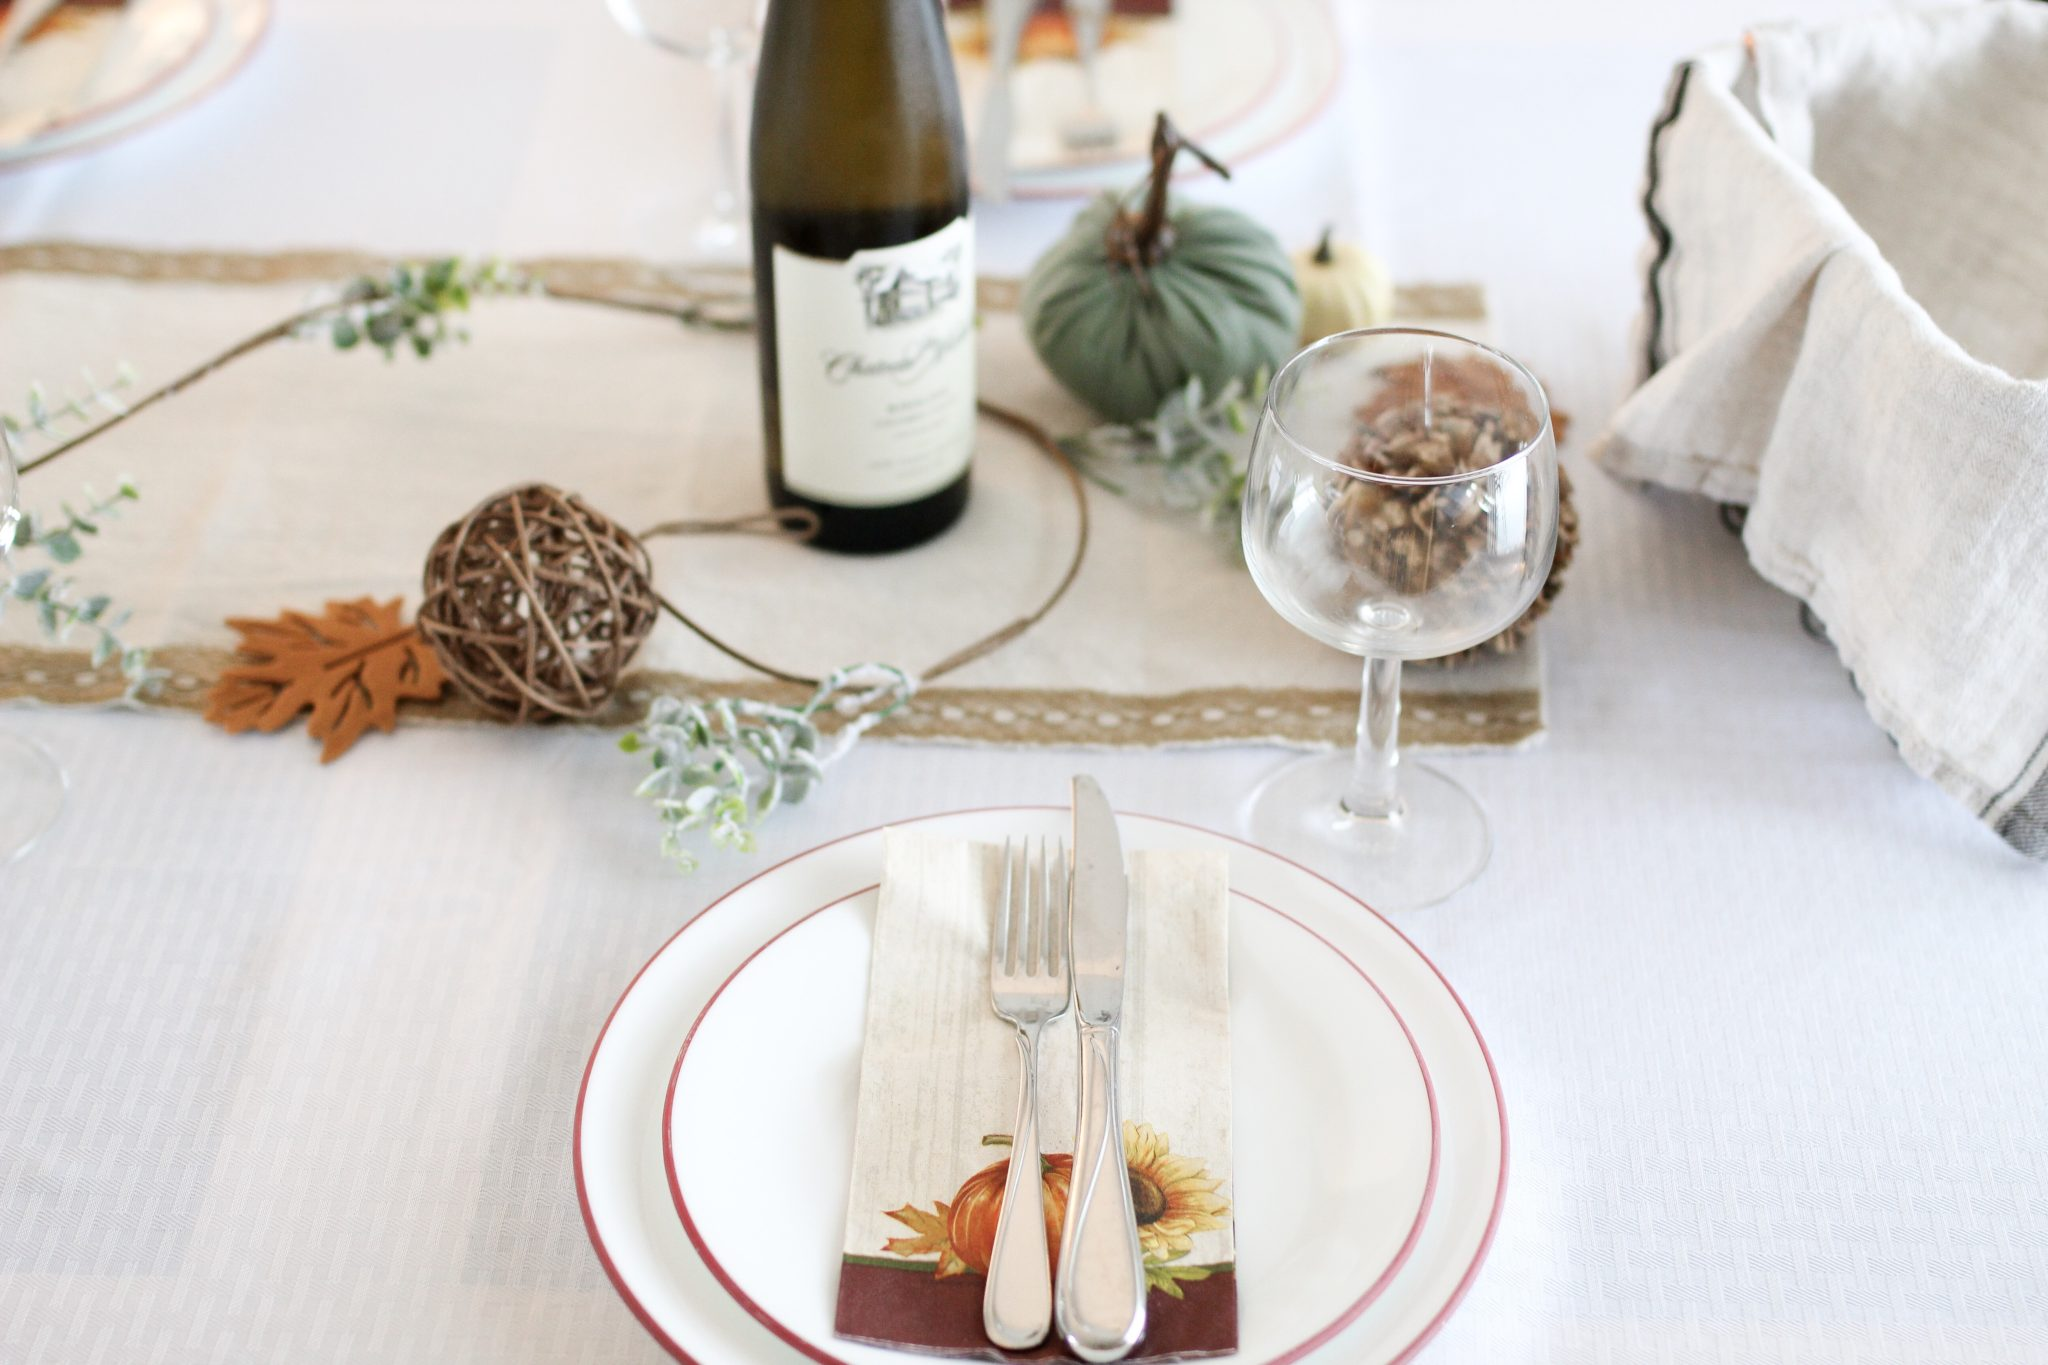 #holidaydecor holiday tablescape,holiday tablescapes pinterest,simple holiday tablescapes,holiday tablescape ideas,holiday table setting,holiday table setting ideas holiday table settings christmas,holiday table settings thanksgiving,christmas table setting with burlap